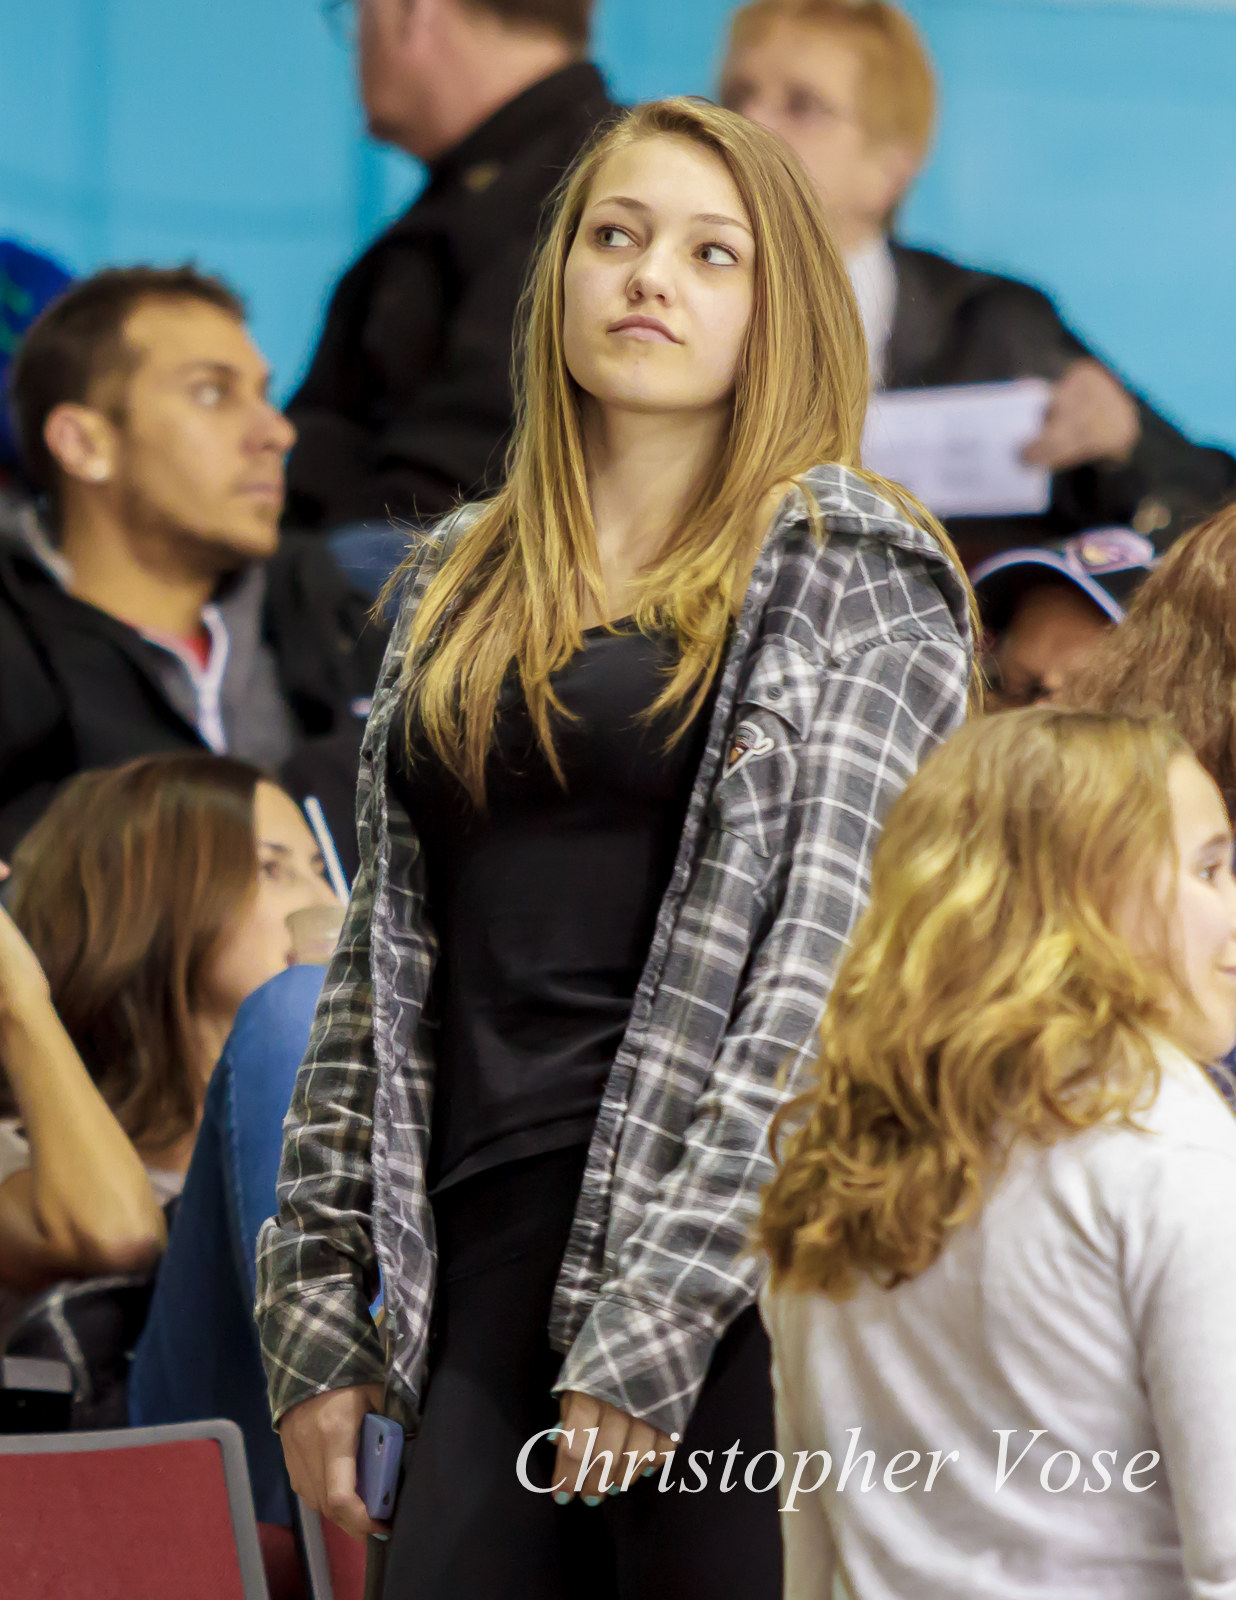 2015-03-13 Vancouver Giants Supporter 1.jpg